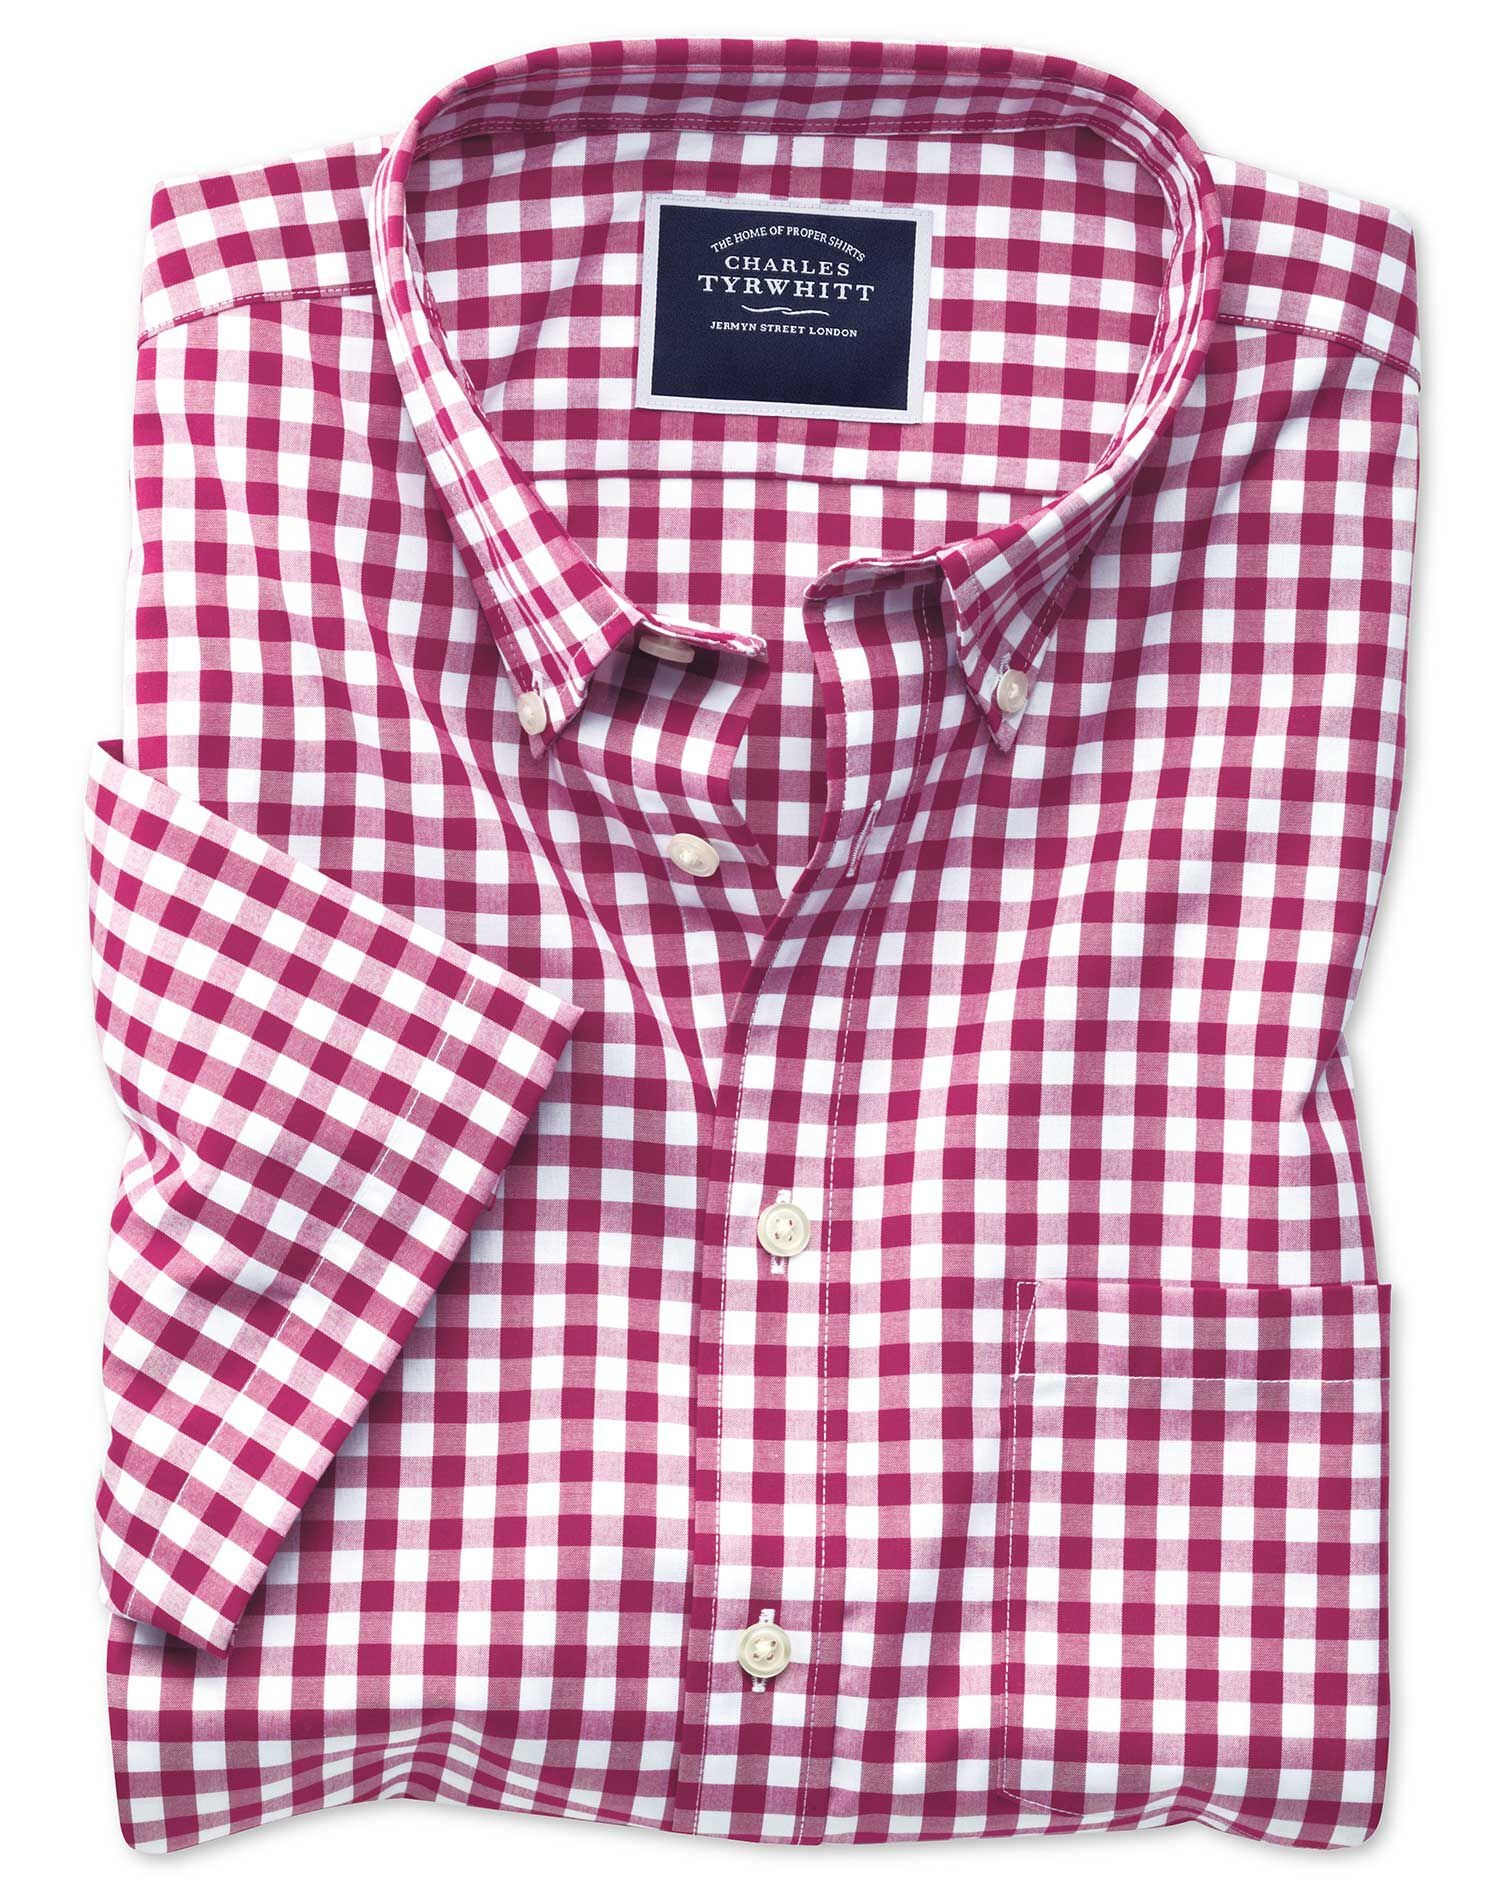 Classic Fit Button-Down Non-Iron Poplin Short Sleeve Raspberry Gingham Cotton Shirt Single Cuff Size